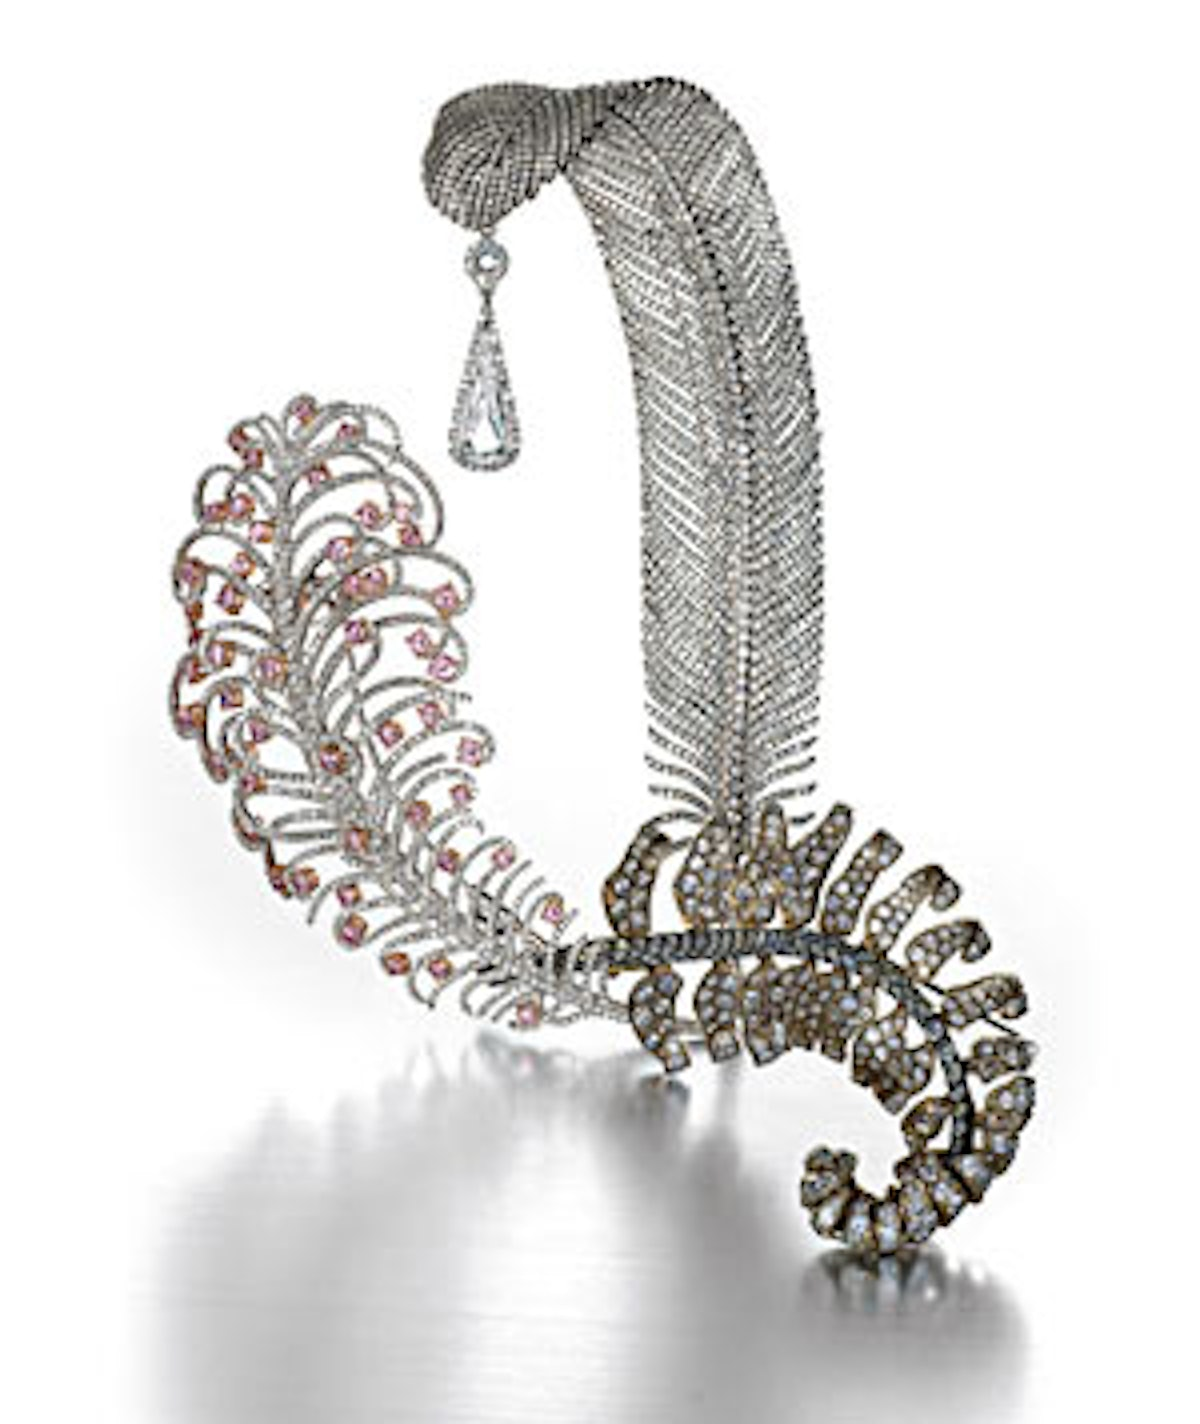 acss_feather_jewelry_v.jpg